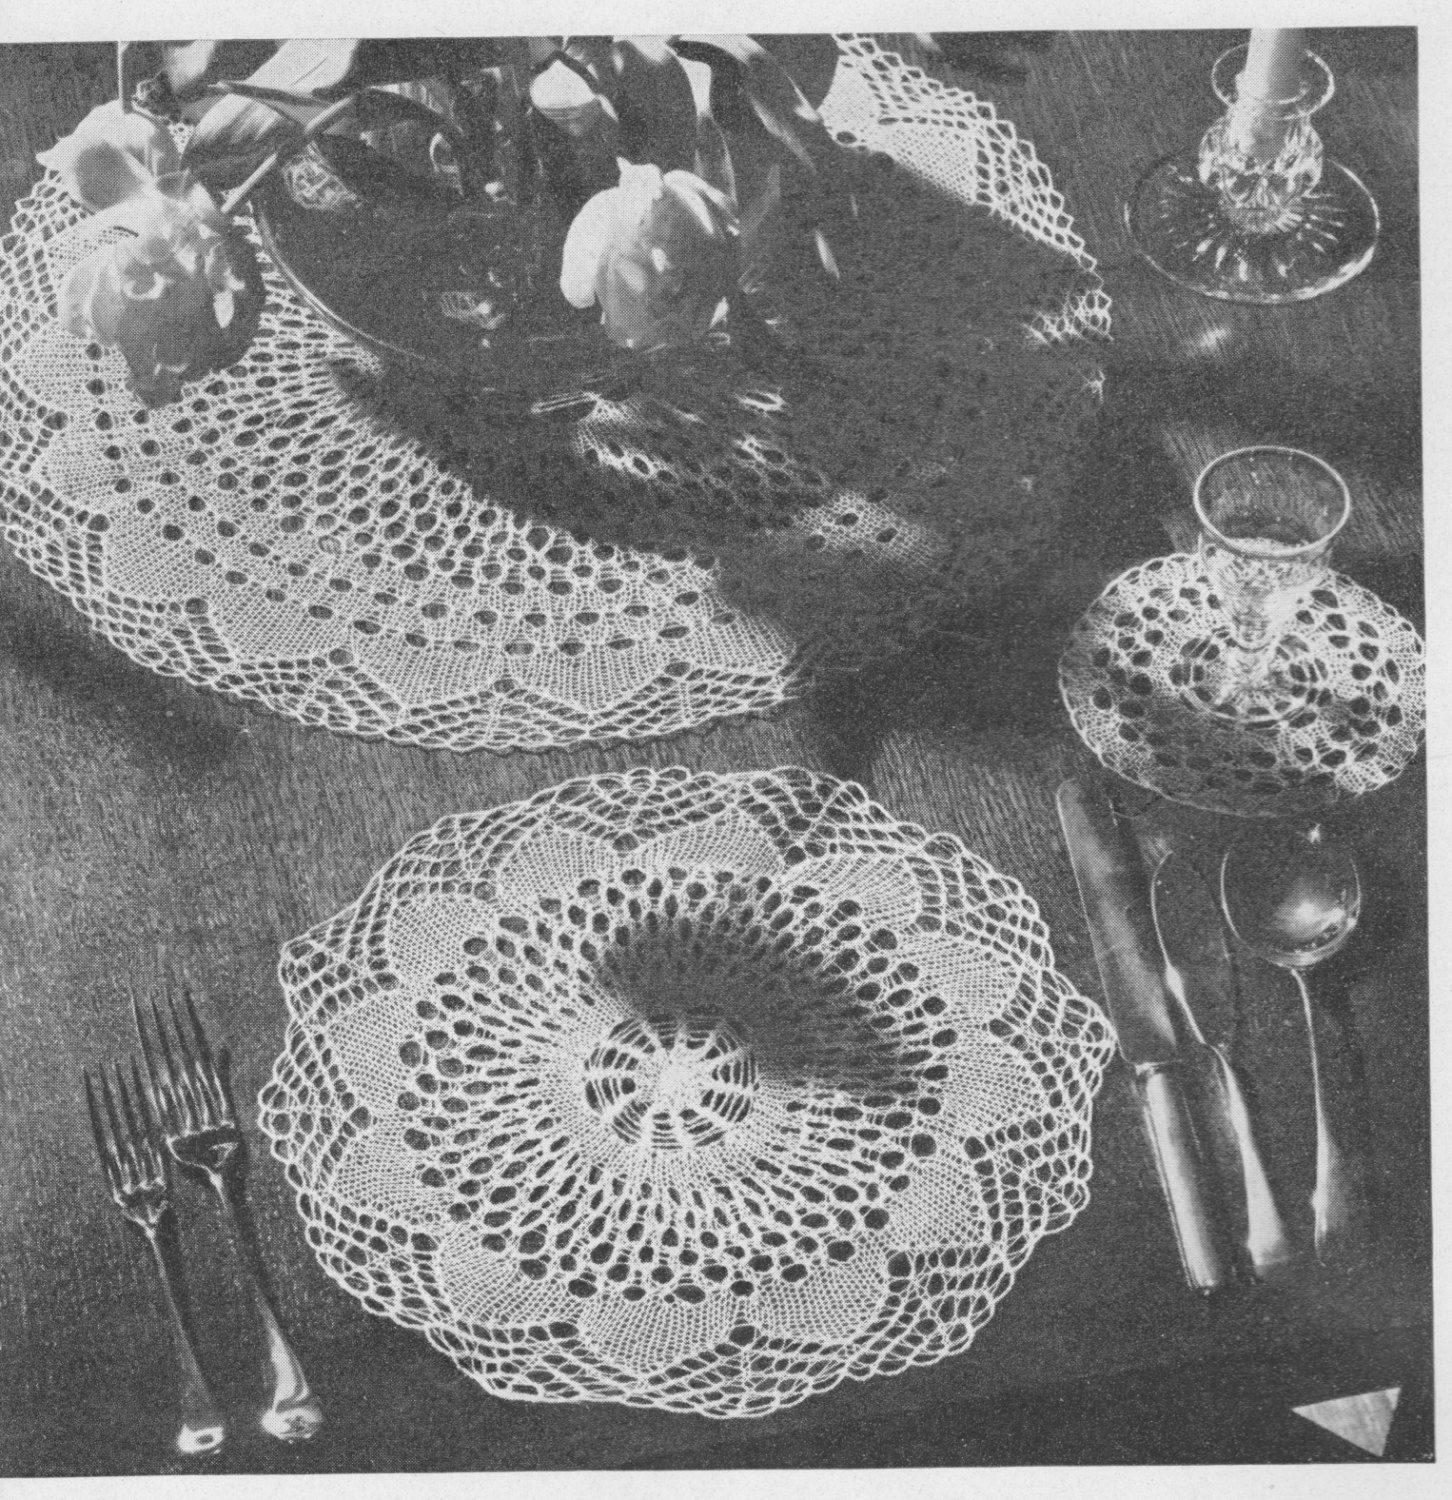 391 Place Mats Table Set Crochet Pattern. Table Decor Home Decor Table Setting Download No shipping Free pattern Offer Vintage 1940u0027s  sc 1 st  Pinterest & 391 Place Mats Table Set Crochet Pattern. Table Decor Home Decor ...